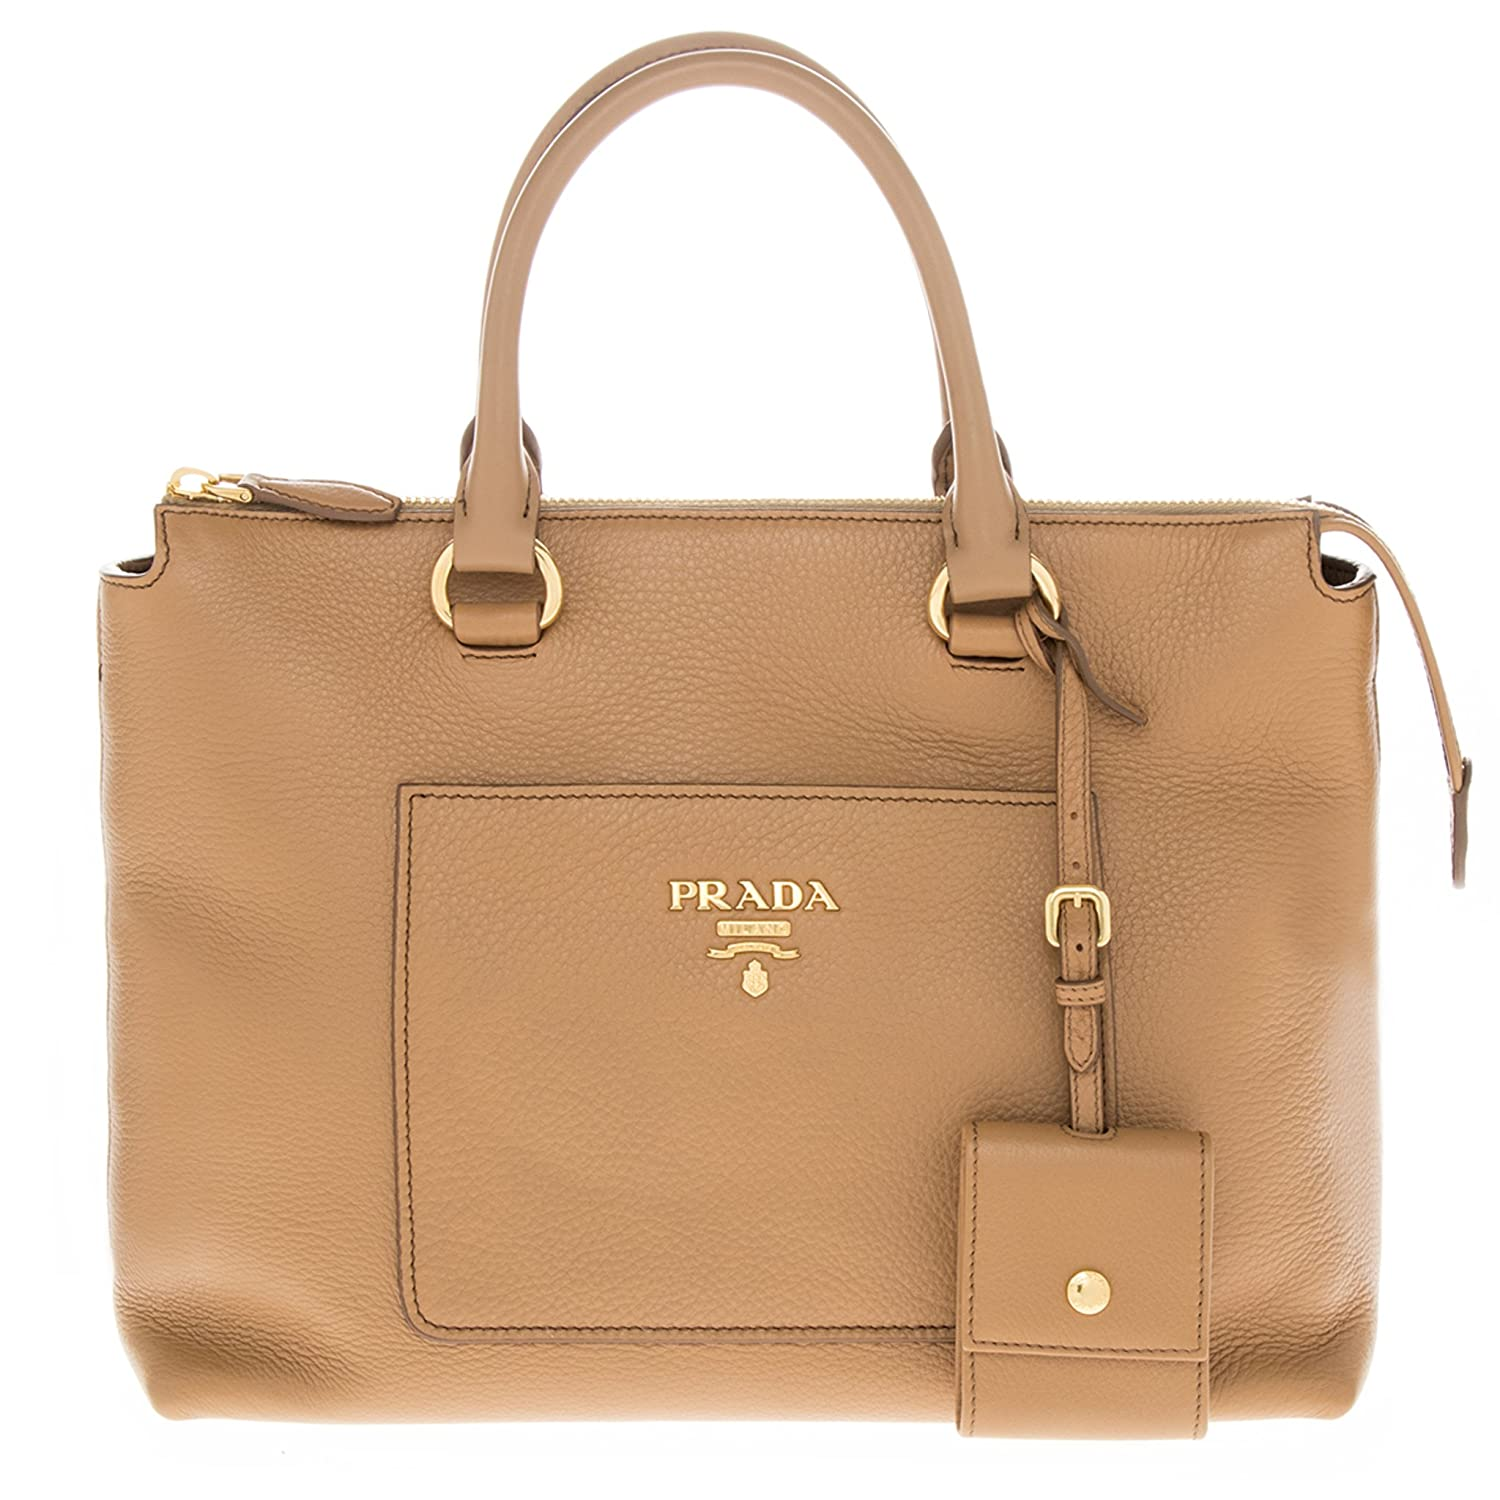 9f9d3a24fba3d1 ... coupon code for prada womens calf tote bag brown amazon shoes handbags  2dddd 672d0